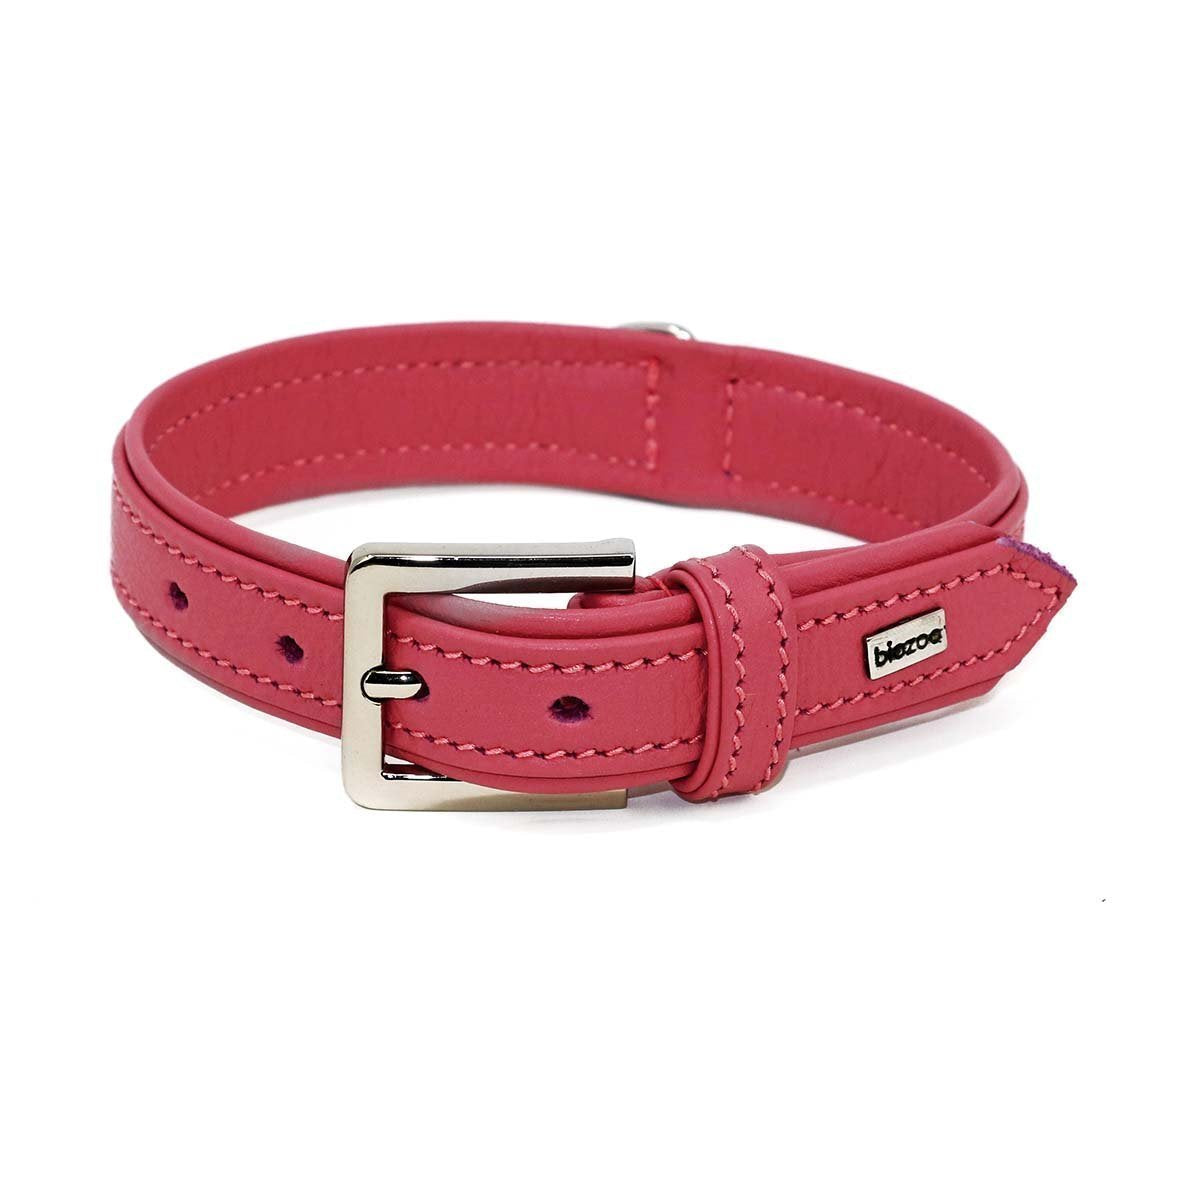 Provence Leather Collar-Collar-Biozoo-Biozoopets